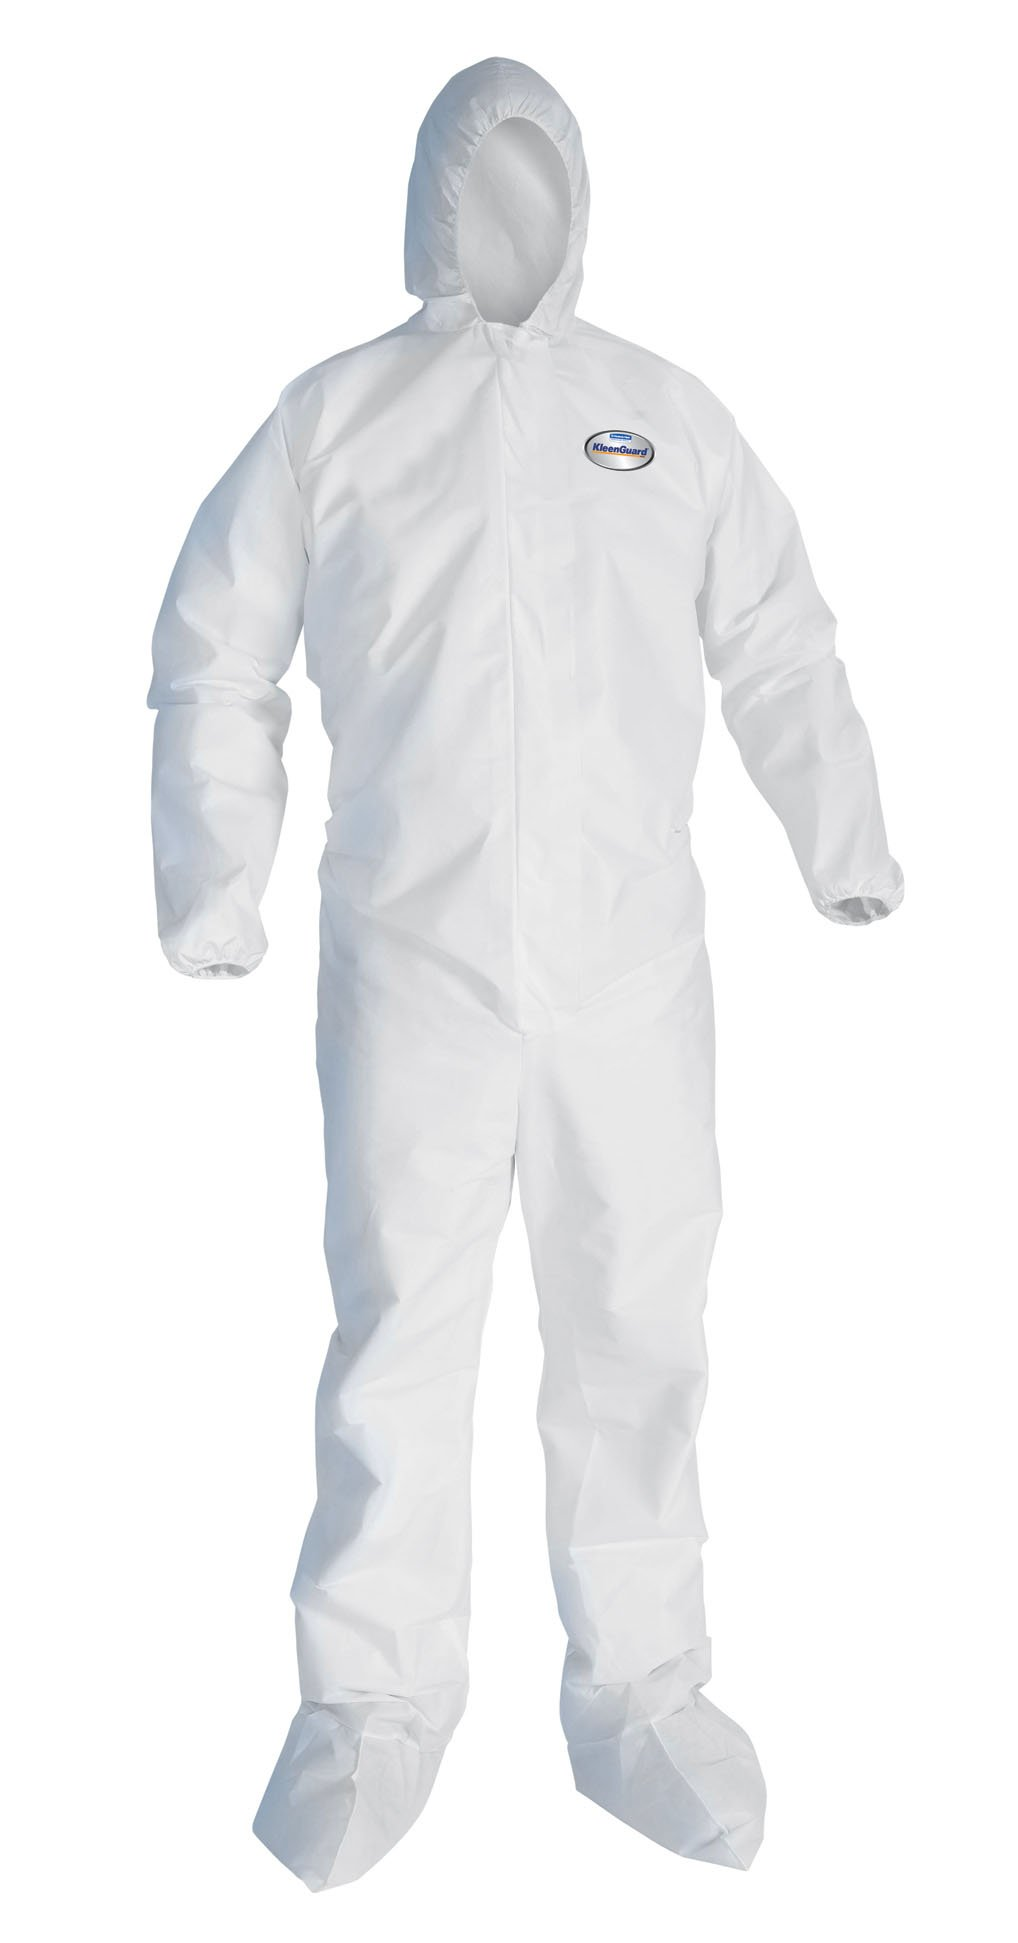 Kimberly-Clark KleenGuard A10 Polypropylene Light Duty Disposable Coverall with Hood and Boots, Elastic Wrist, White, Size L (Case of 25)